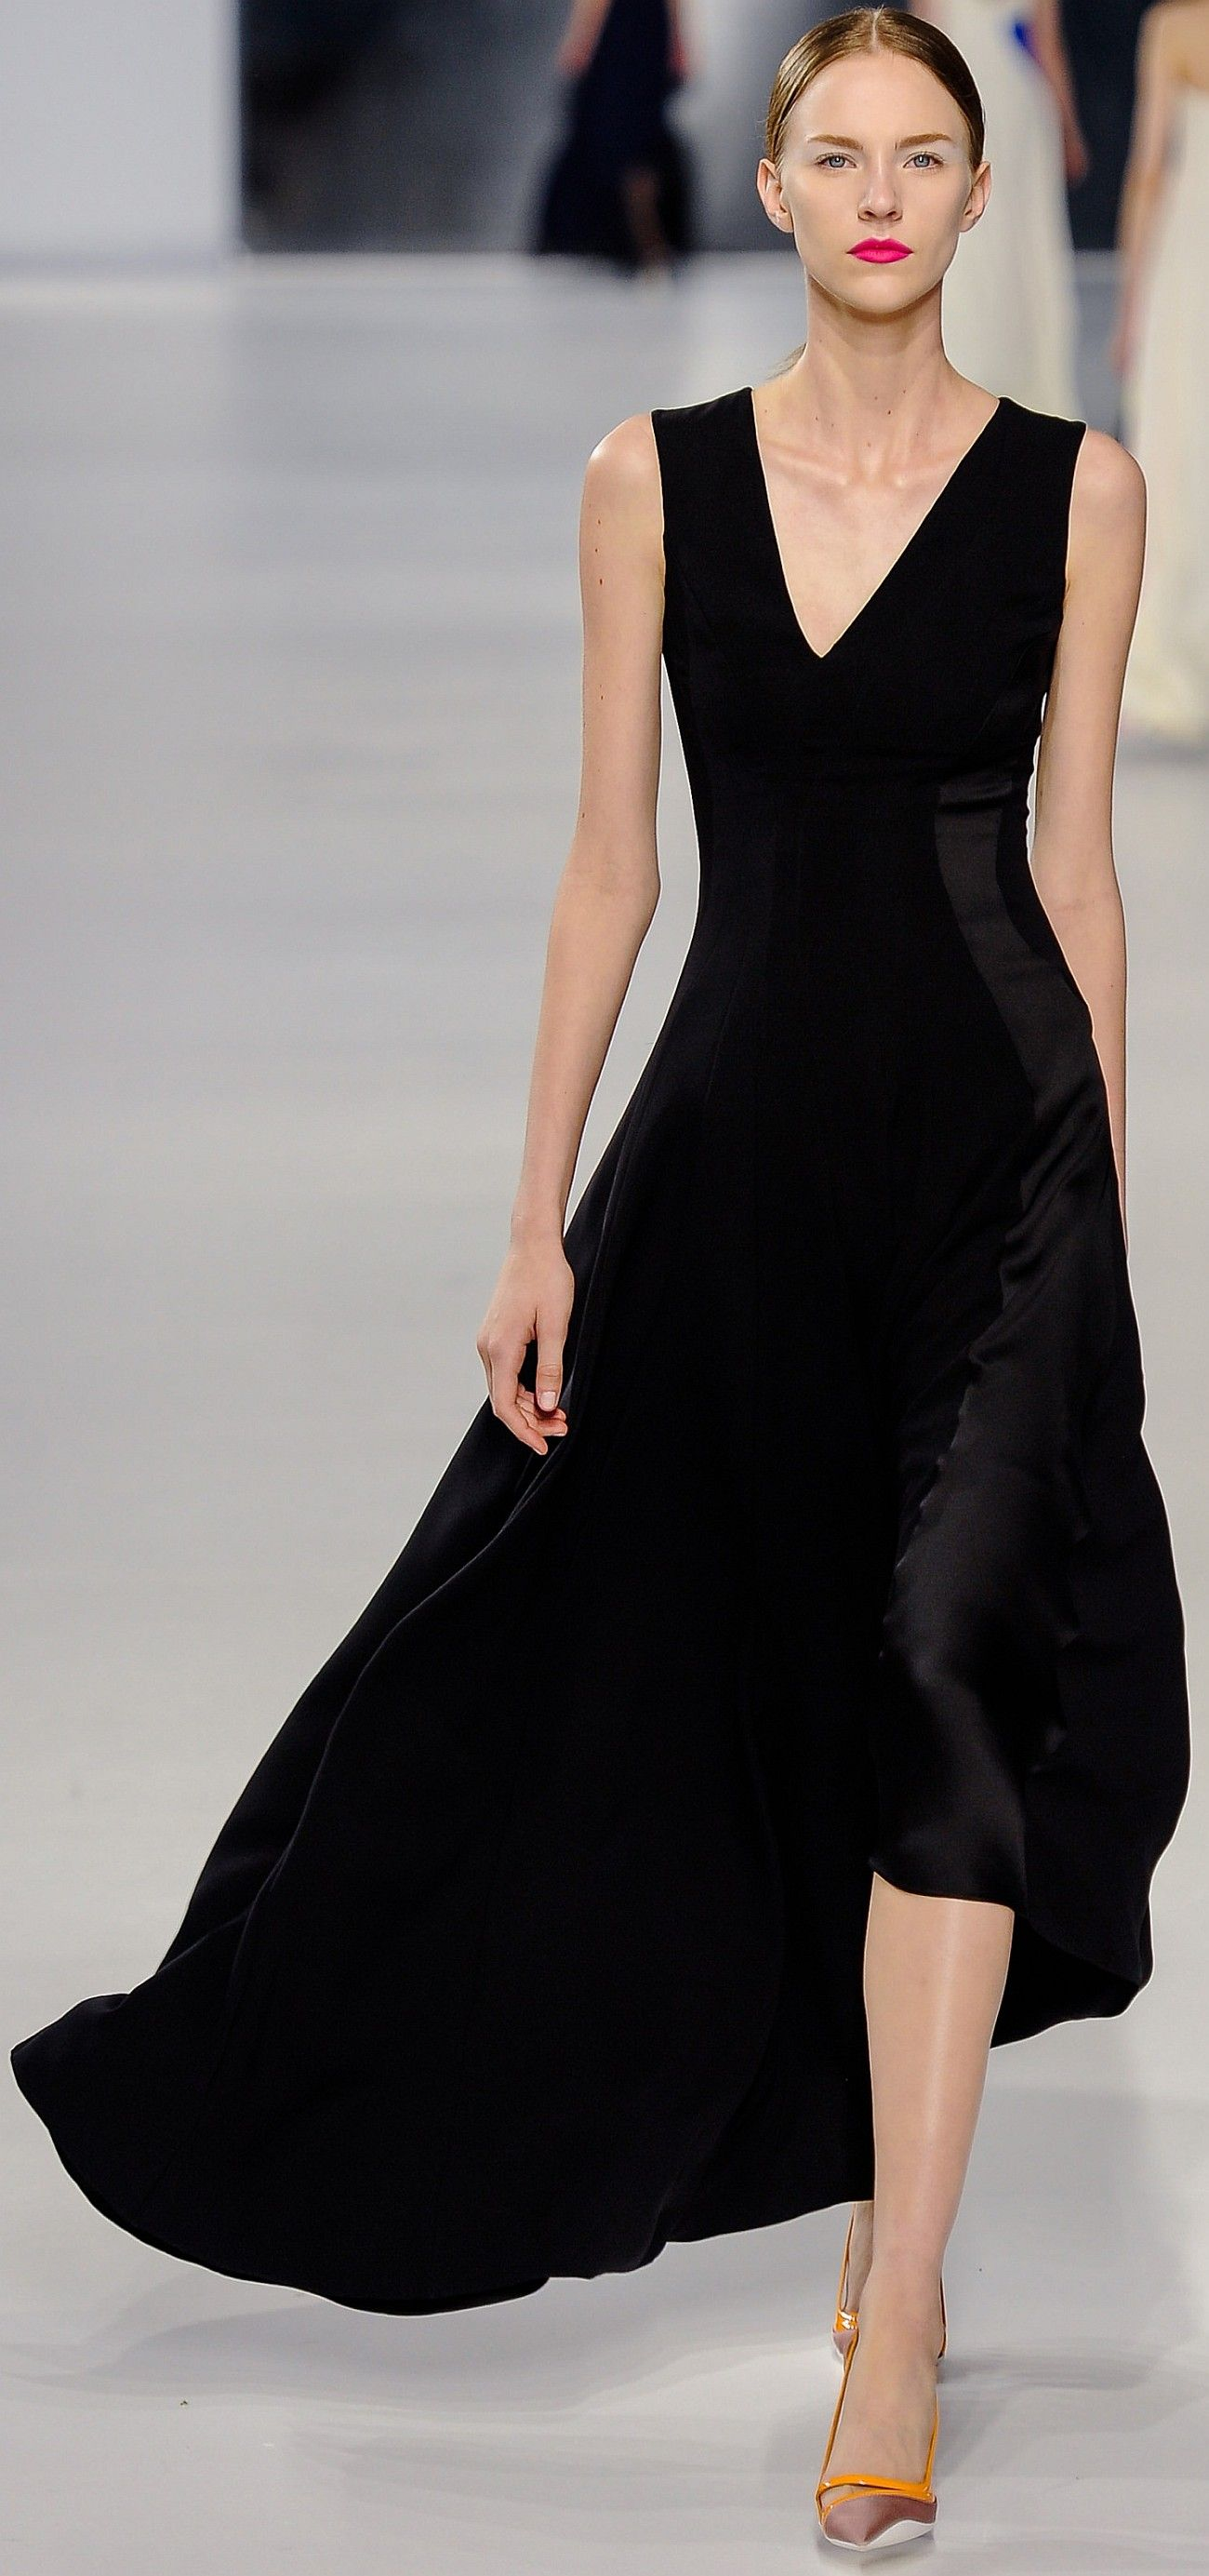 Fabulous LBD with assymetric necklace and flowing skirt. Christian ...